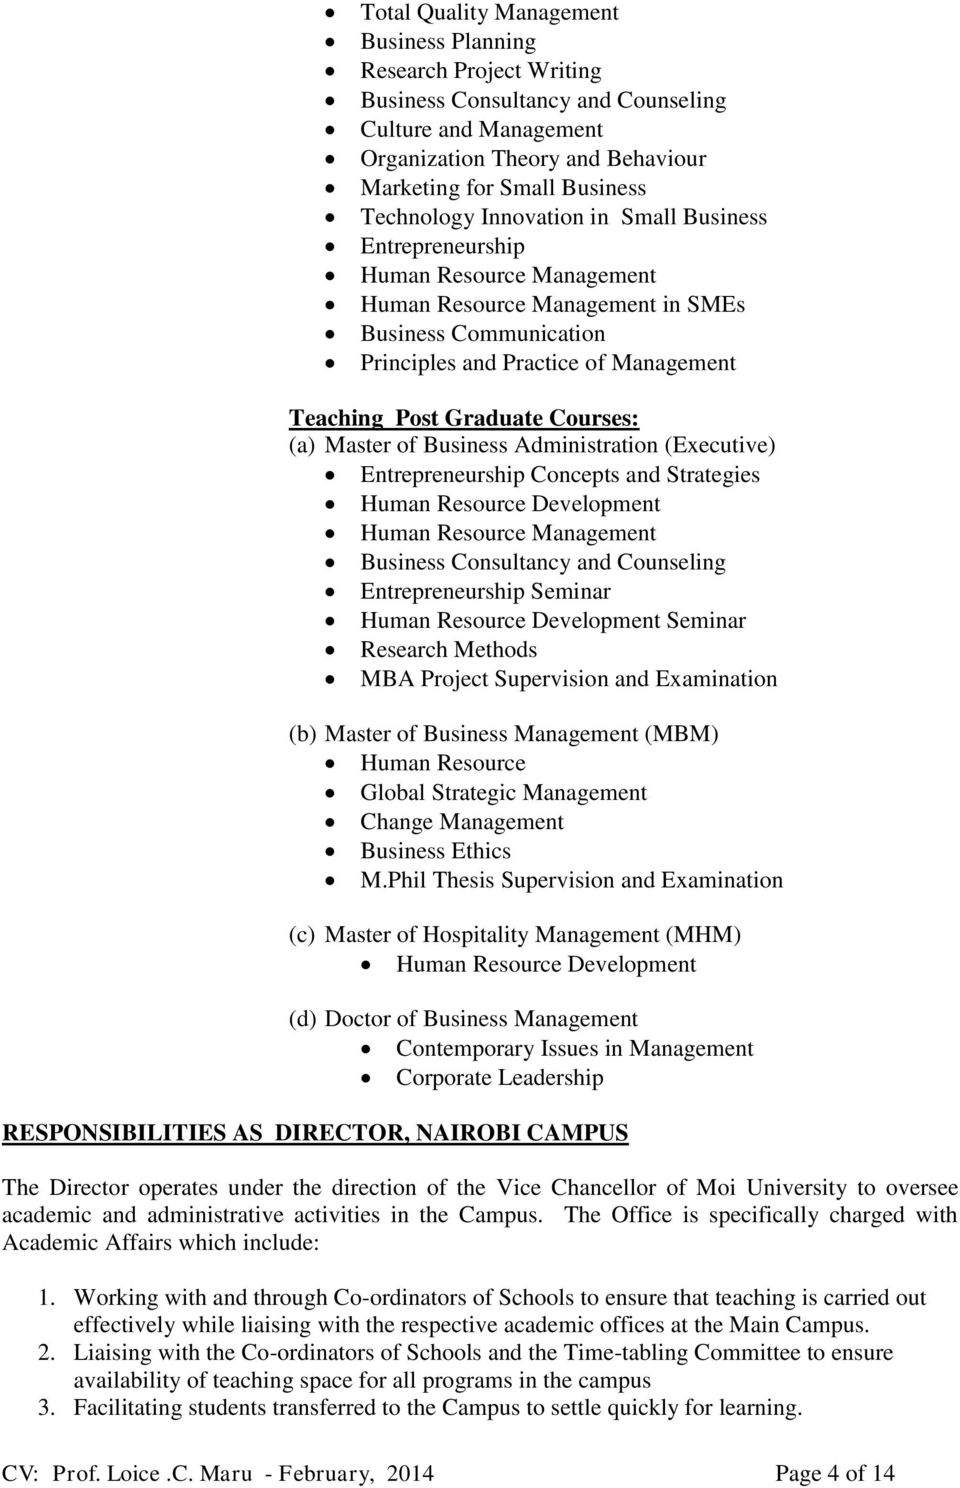 curriculum vitae moi university school of business and economics graduate courses a master of business administration executive entrepreneurship concepts and